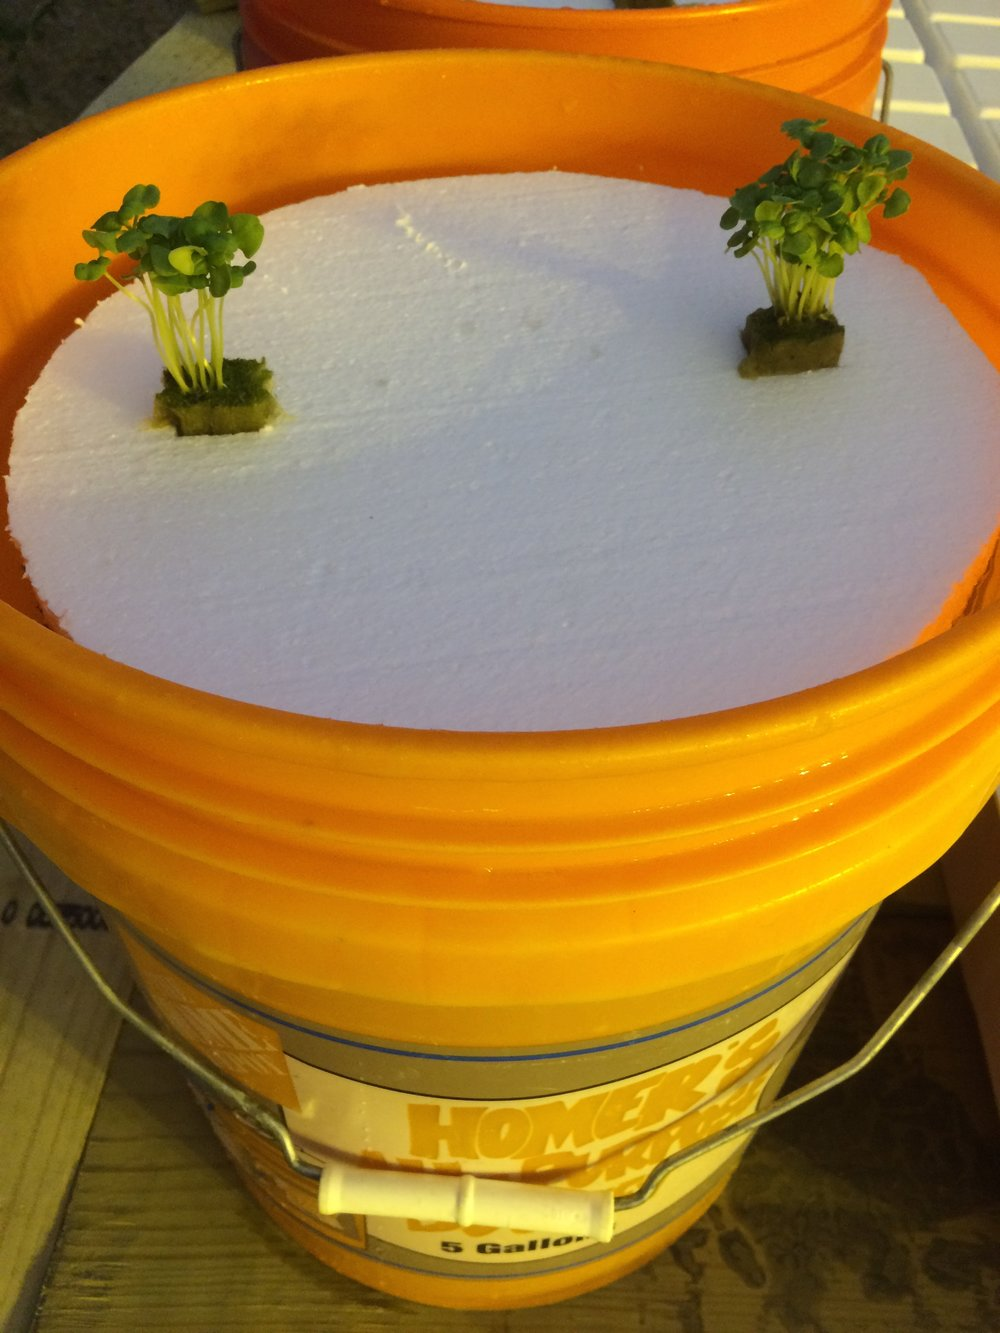 "Cut holes in the foam board to fit seedling plugs. Most leafy greens should be spaced 6"" apart. Fill bucket with water and mix in hydroponic fertilizer using recommended rates on fertilizer bag. For this system I used  MaxiGro by General Hydroponics ."